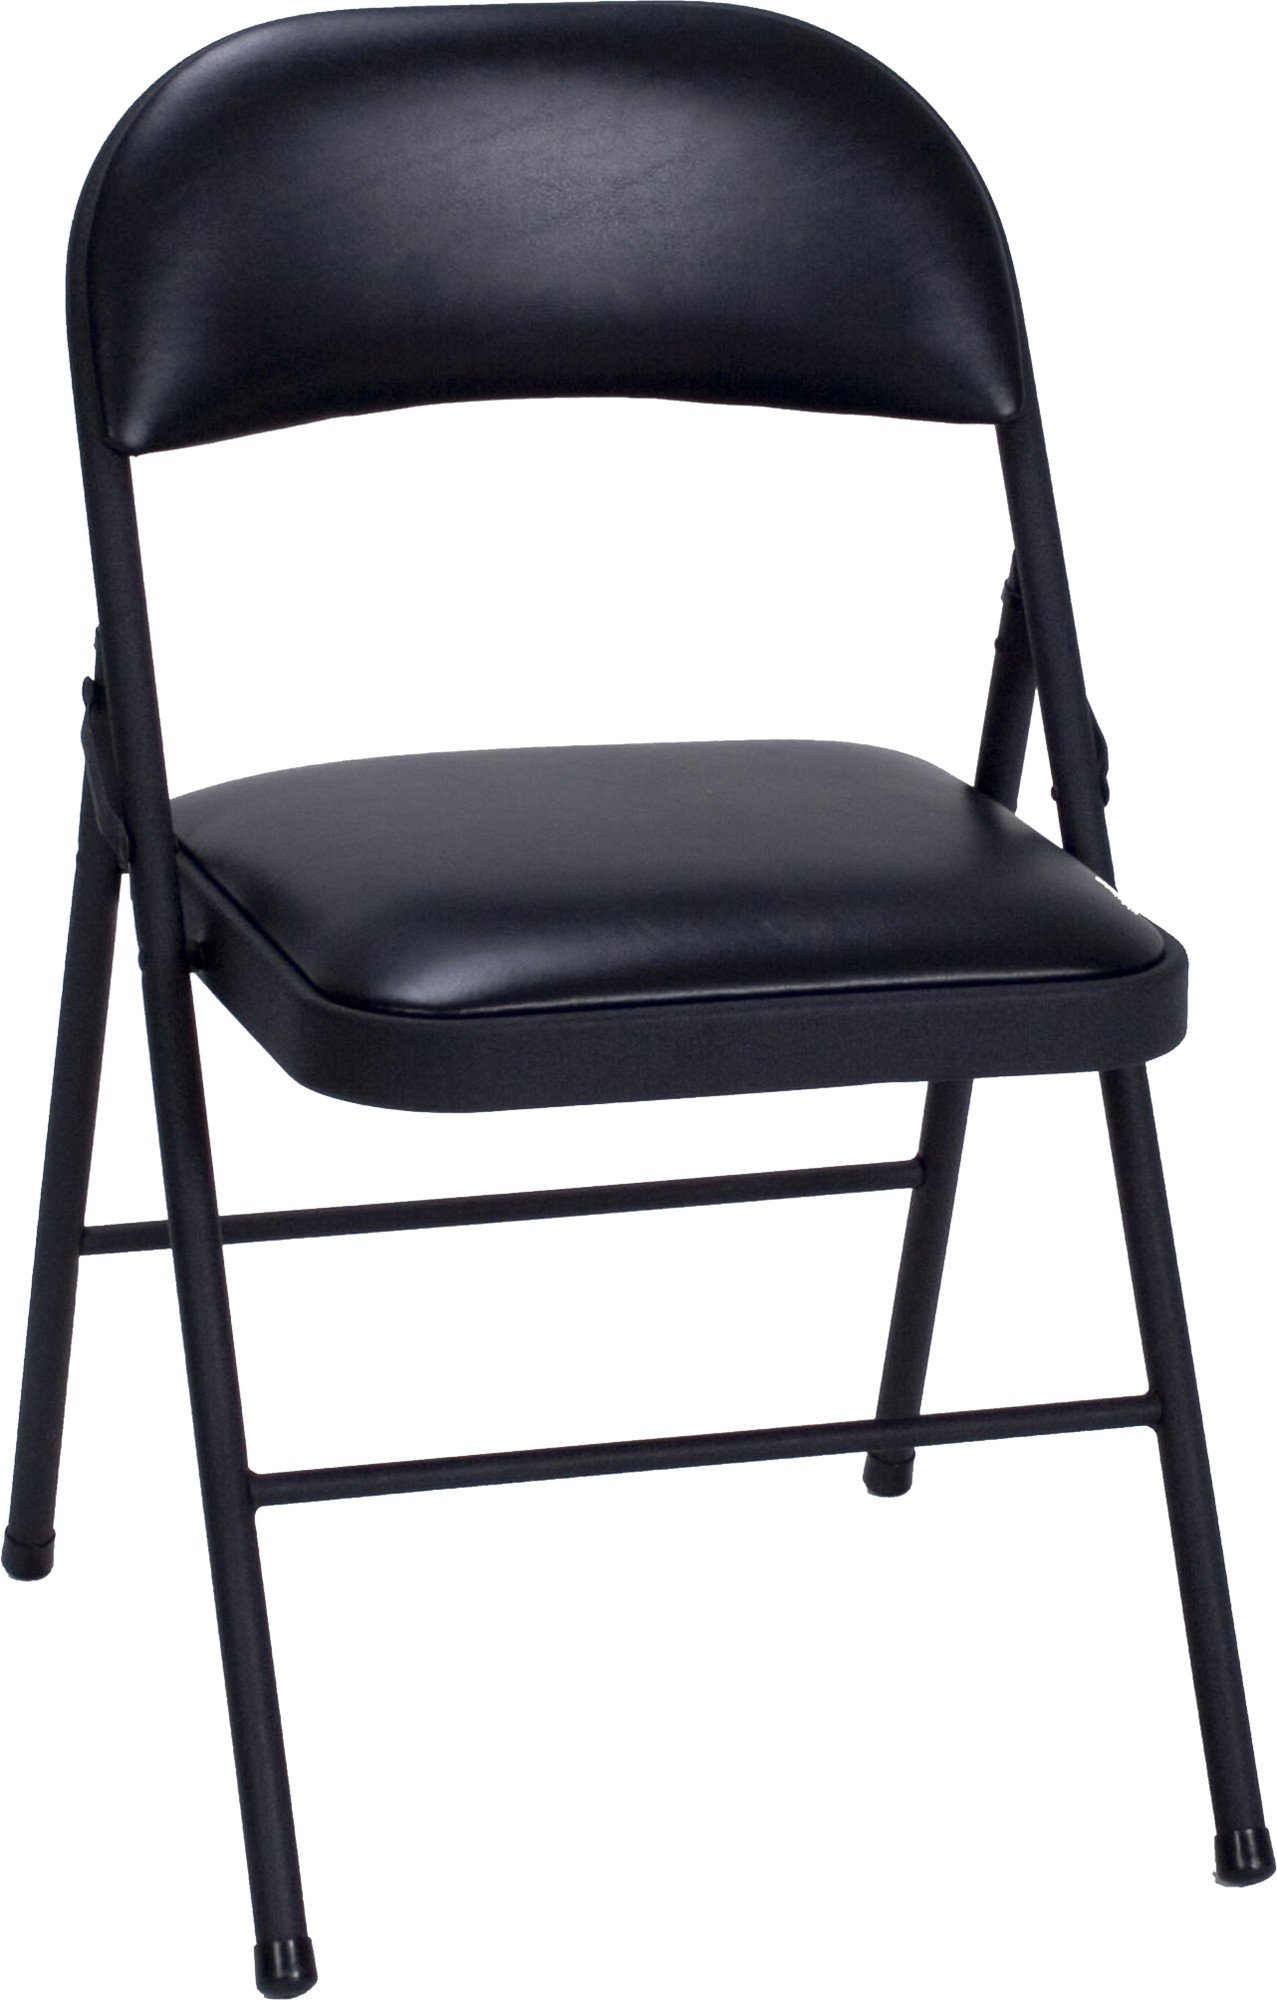 Galleon cosco vinyl 4 pack folding chair black - Replacement chair leg tips ...